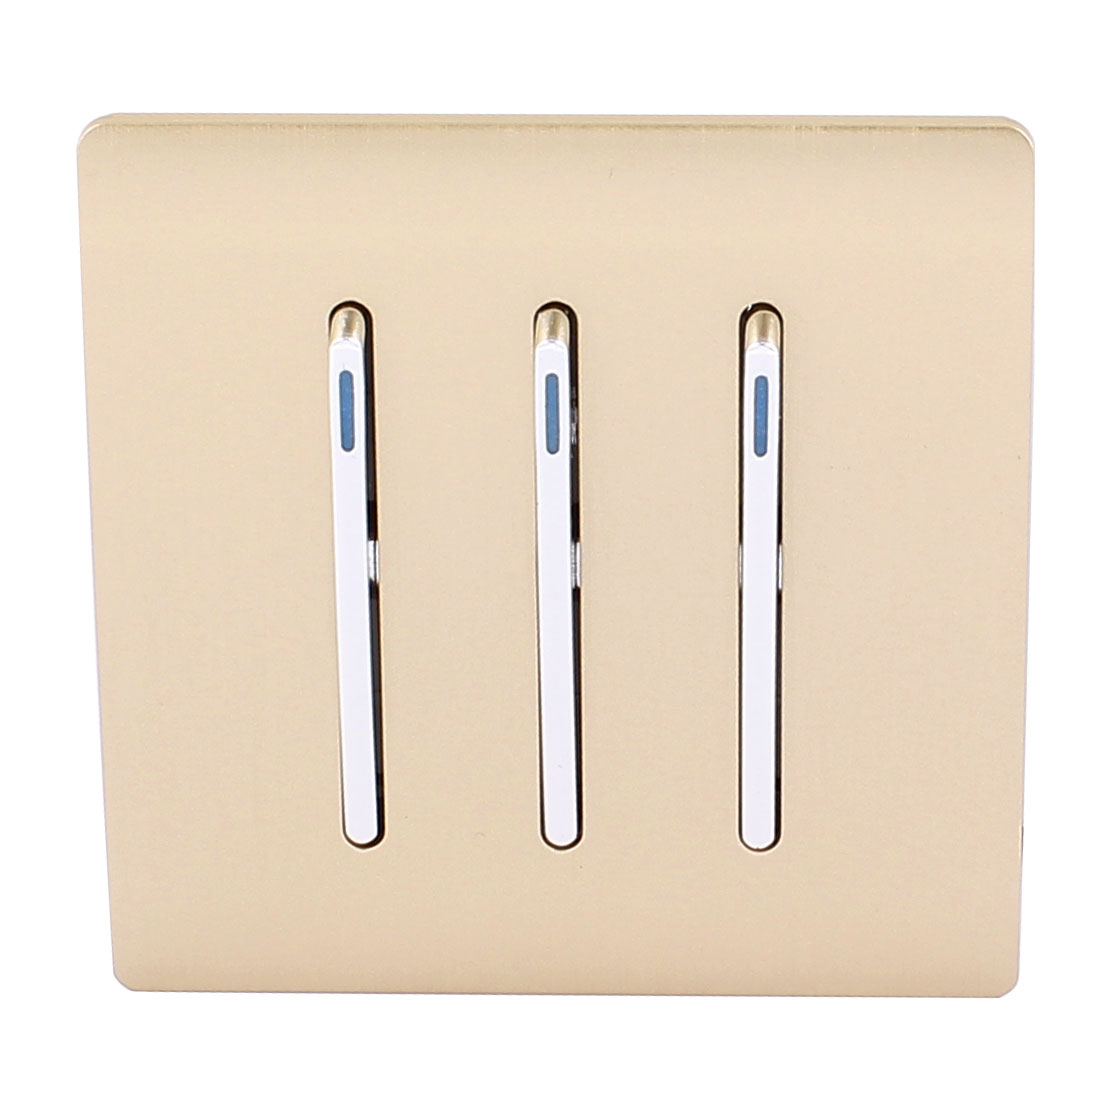 AC 250V 10A 3 Gang 2 way On/Off Wall Mounting Flame Retardant PC Switch Gold